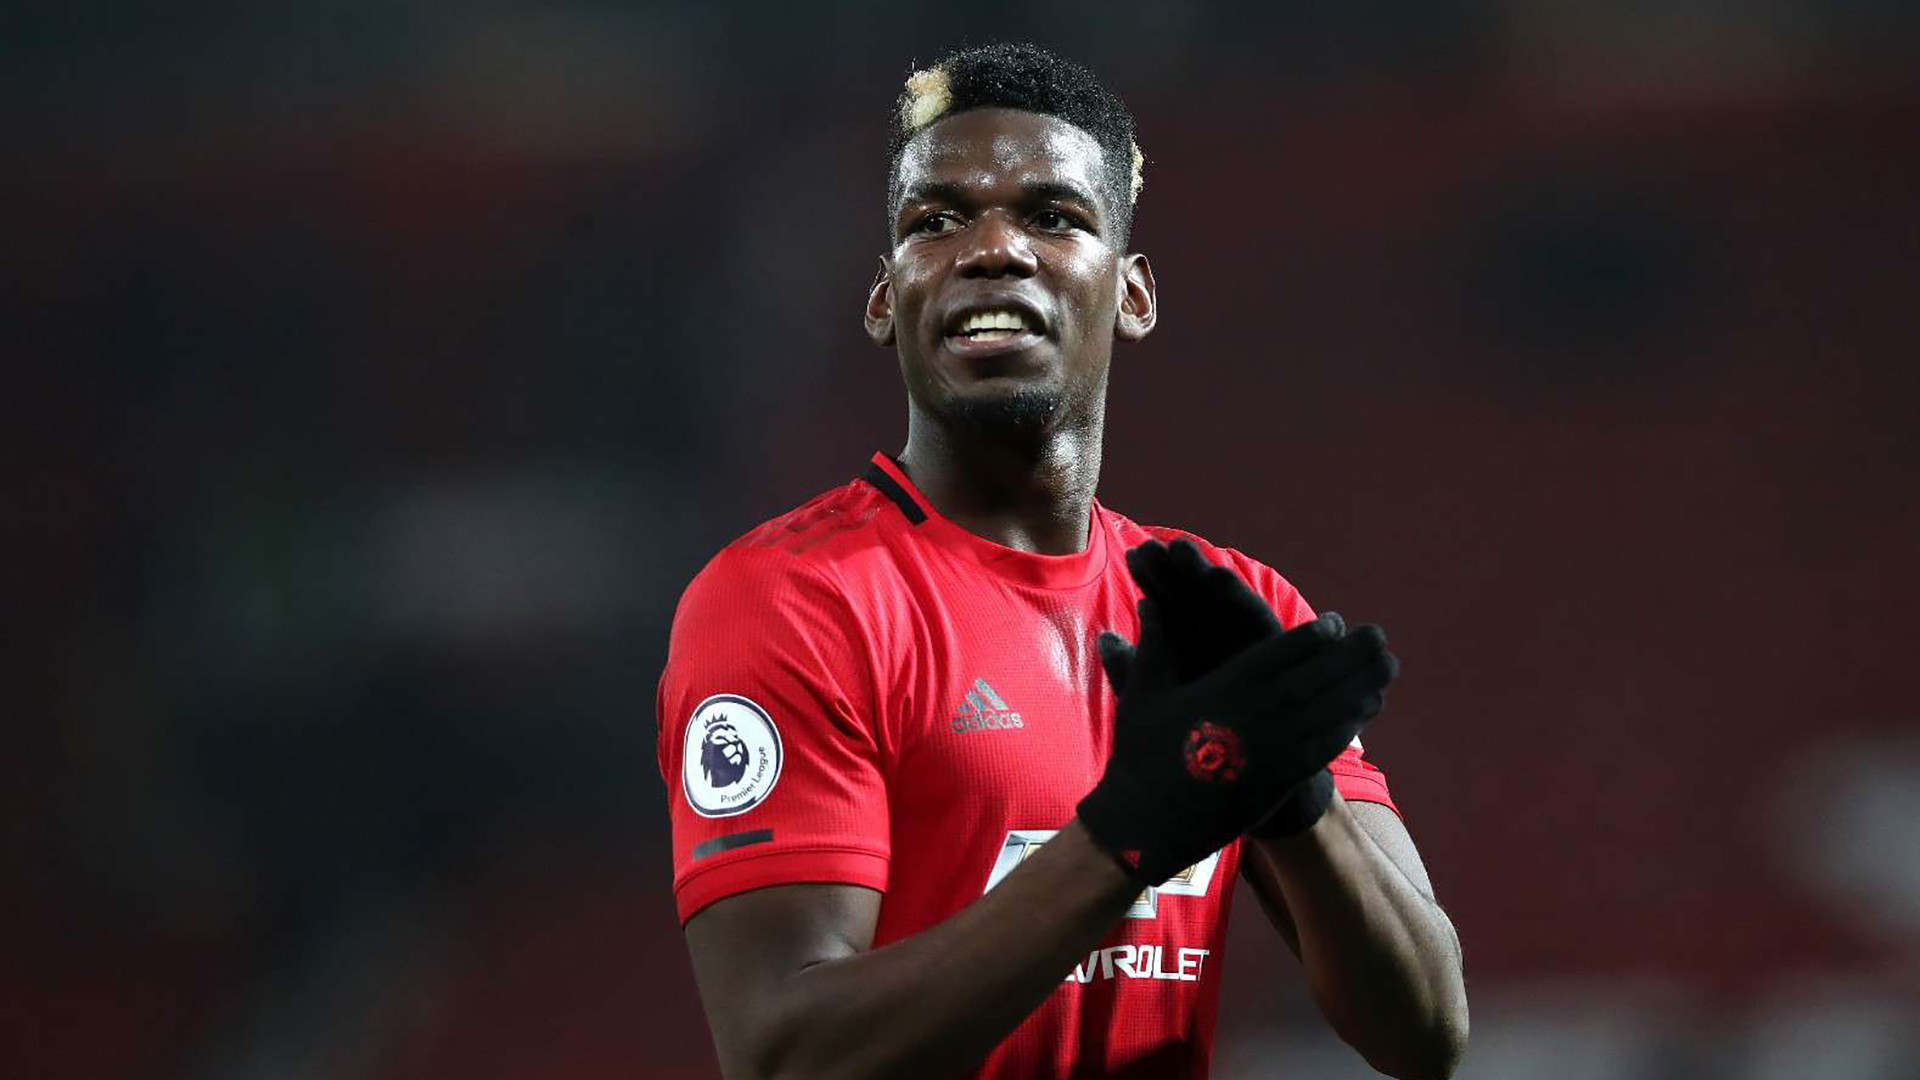 'Pogba's lack of commitment distracts from his talent' - Man Utd star is capable of being one of the best in the world, says Neville